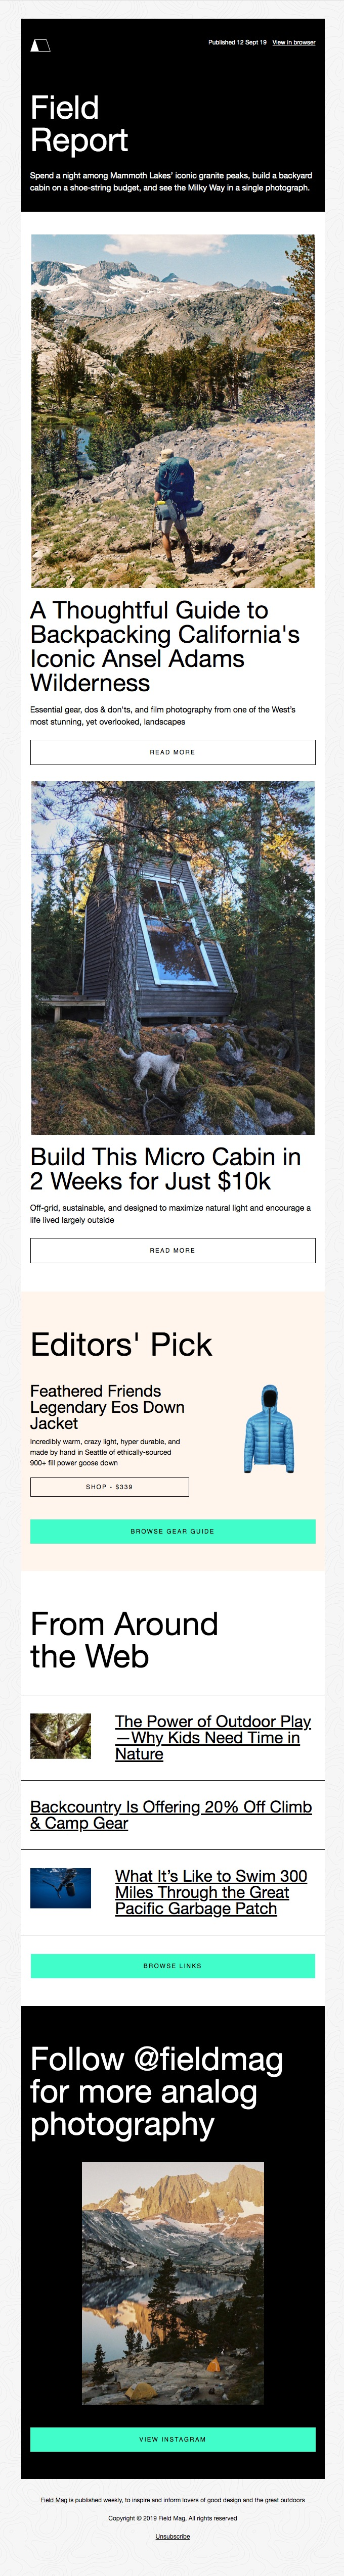 Field Mag sends personalized newsletter